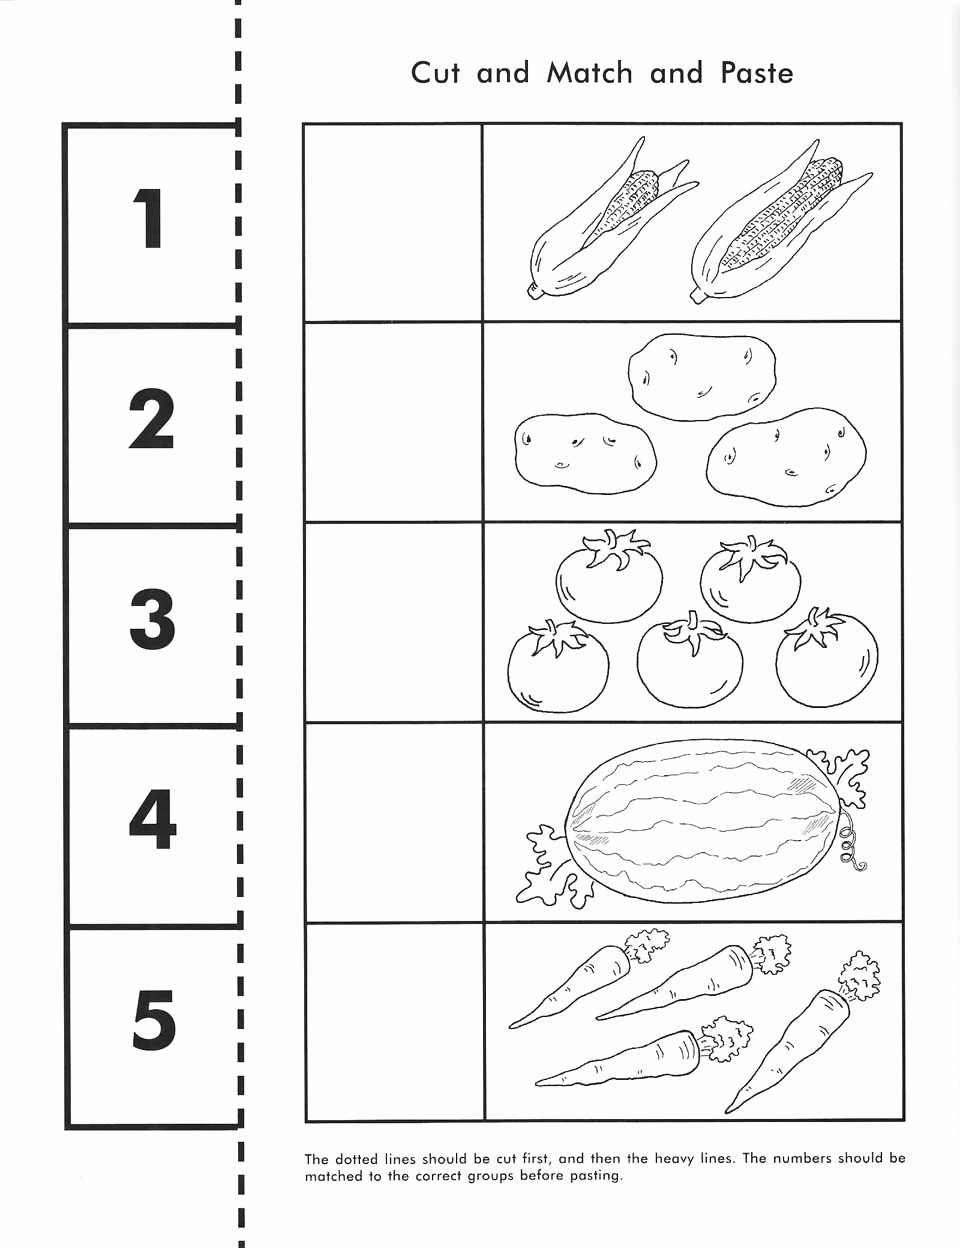 Cut and Paste Math Worksheets for Preschoolers top Home Education Journal Rod & Staff Preschool Workbooks